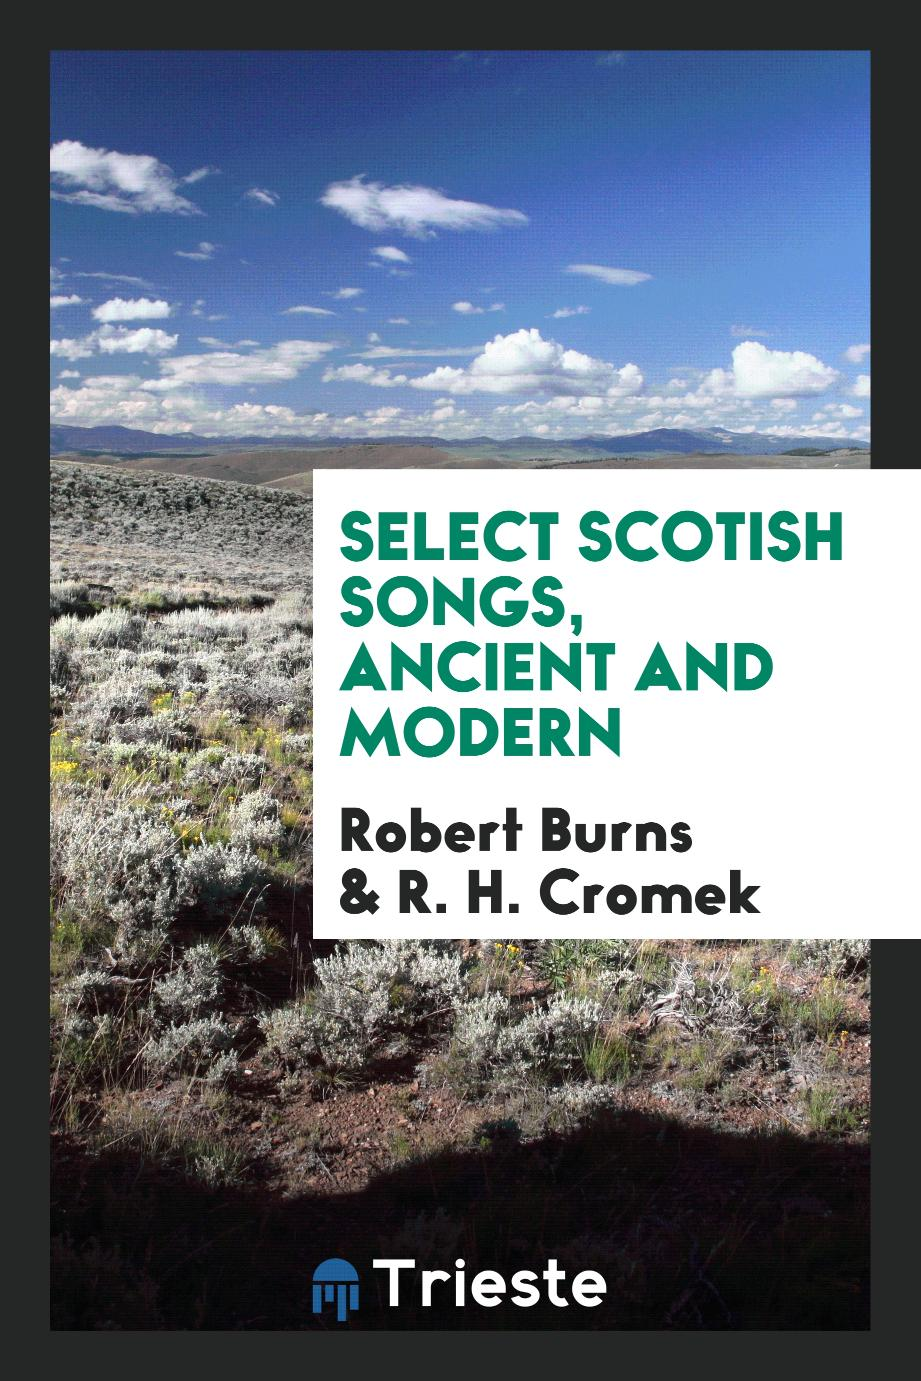 Select Scotish songs, ancient and modern